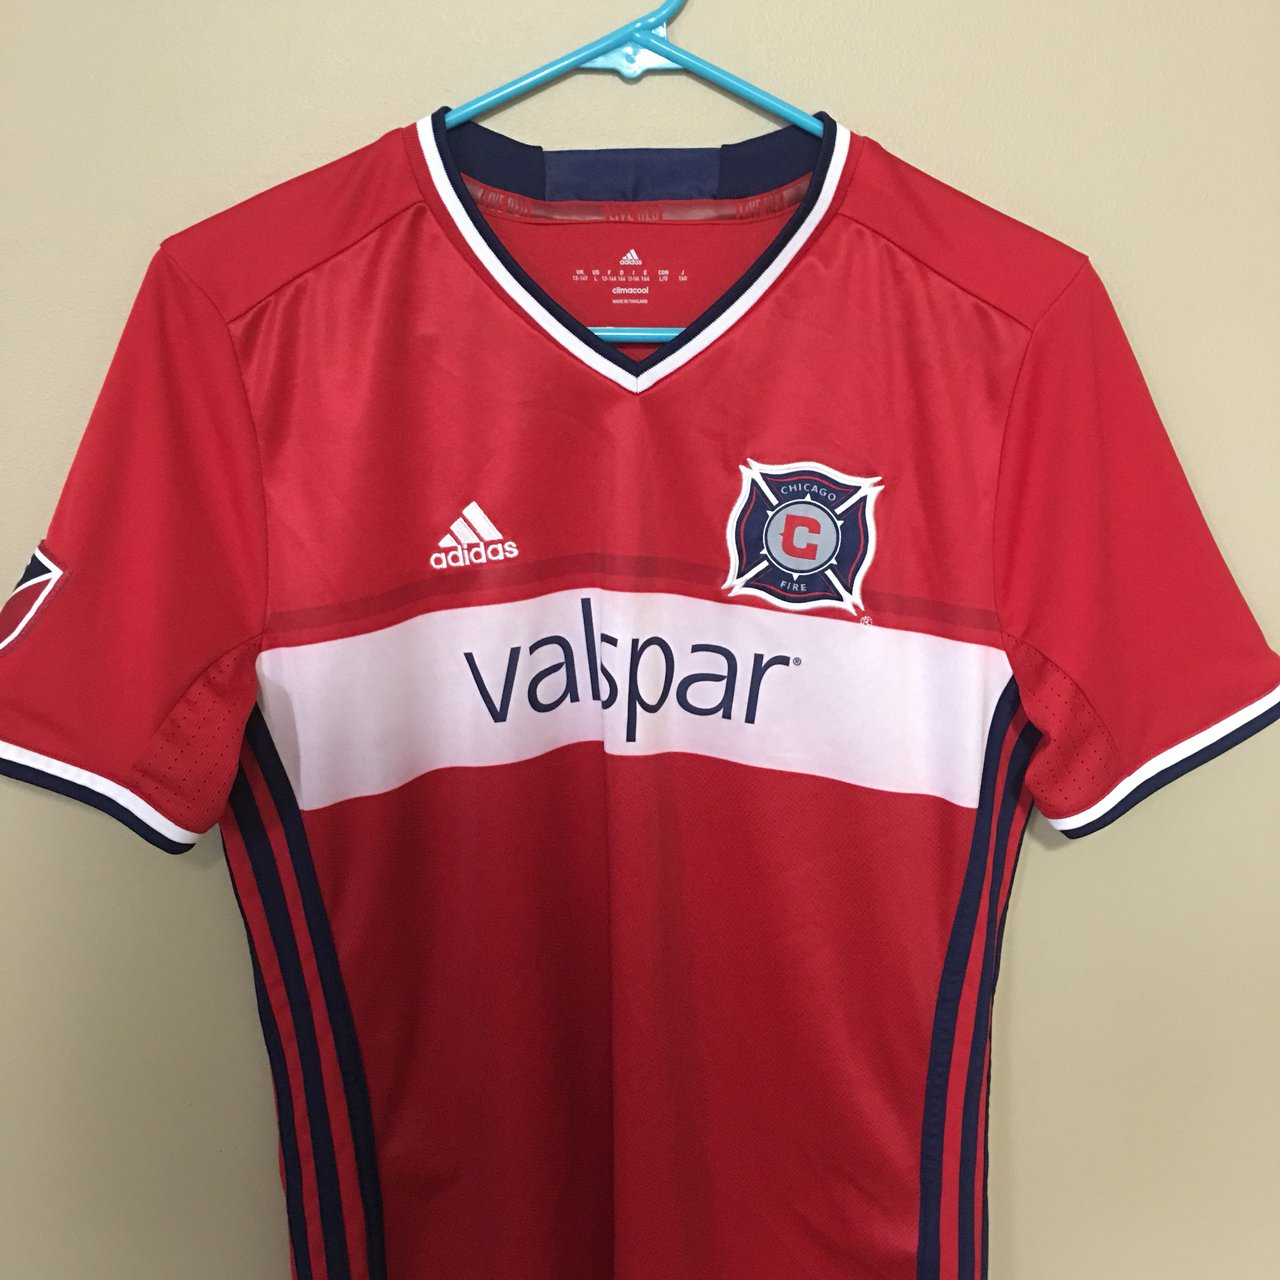 31deebbe0 ADIDAS CHICAGO FIRE MLS JERSEY YOUTH ⚽ SIZE LARGE - Depop